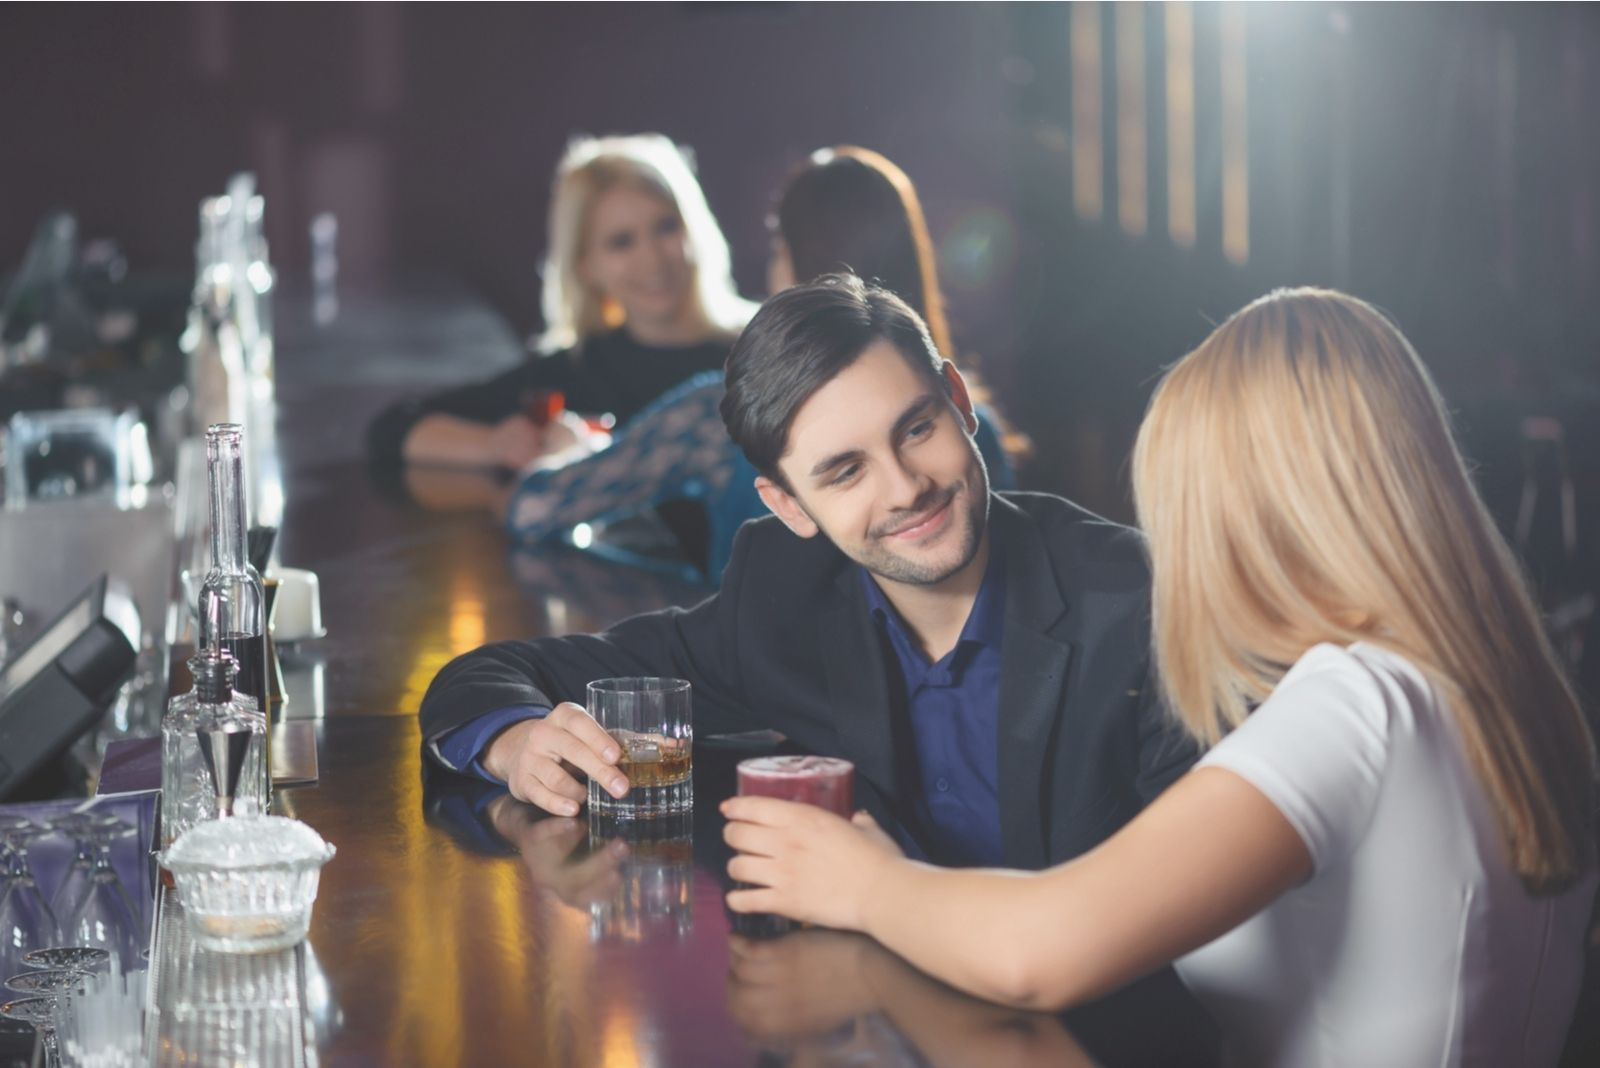 office female colleague drinking with her male colleague at the bar